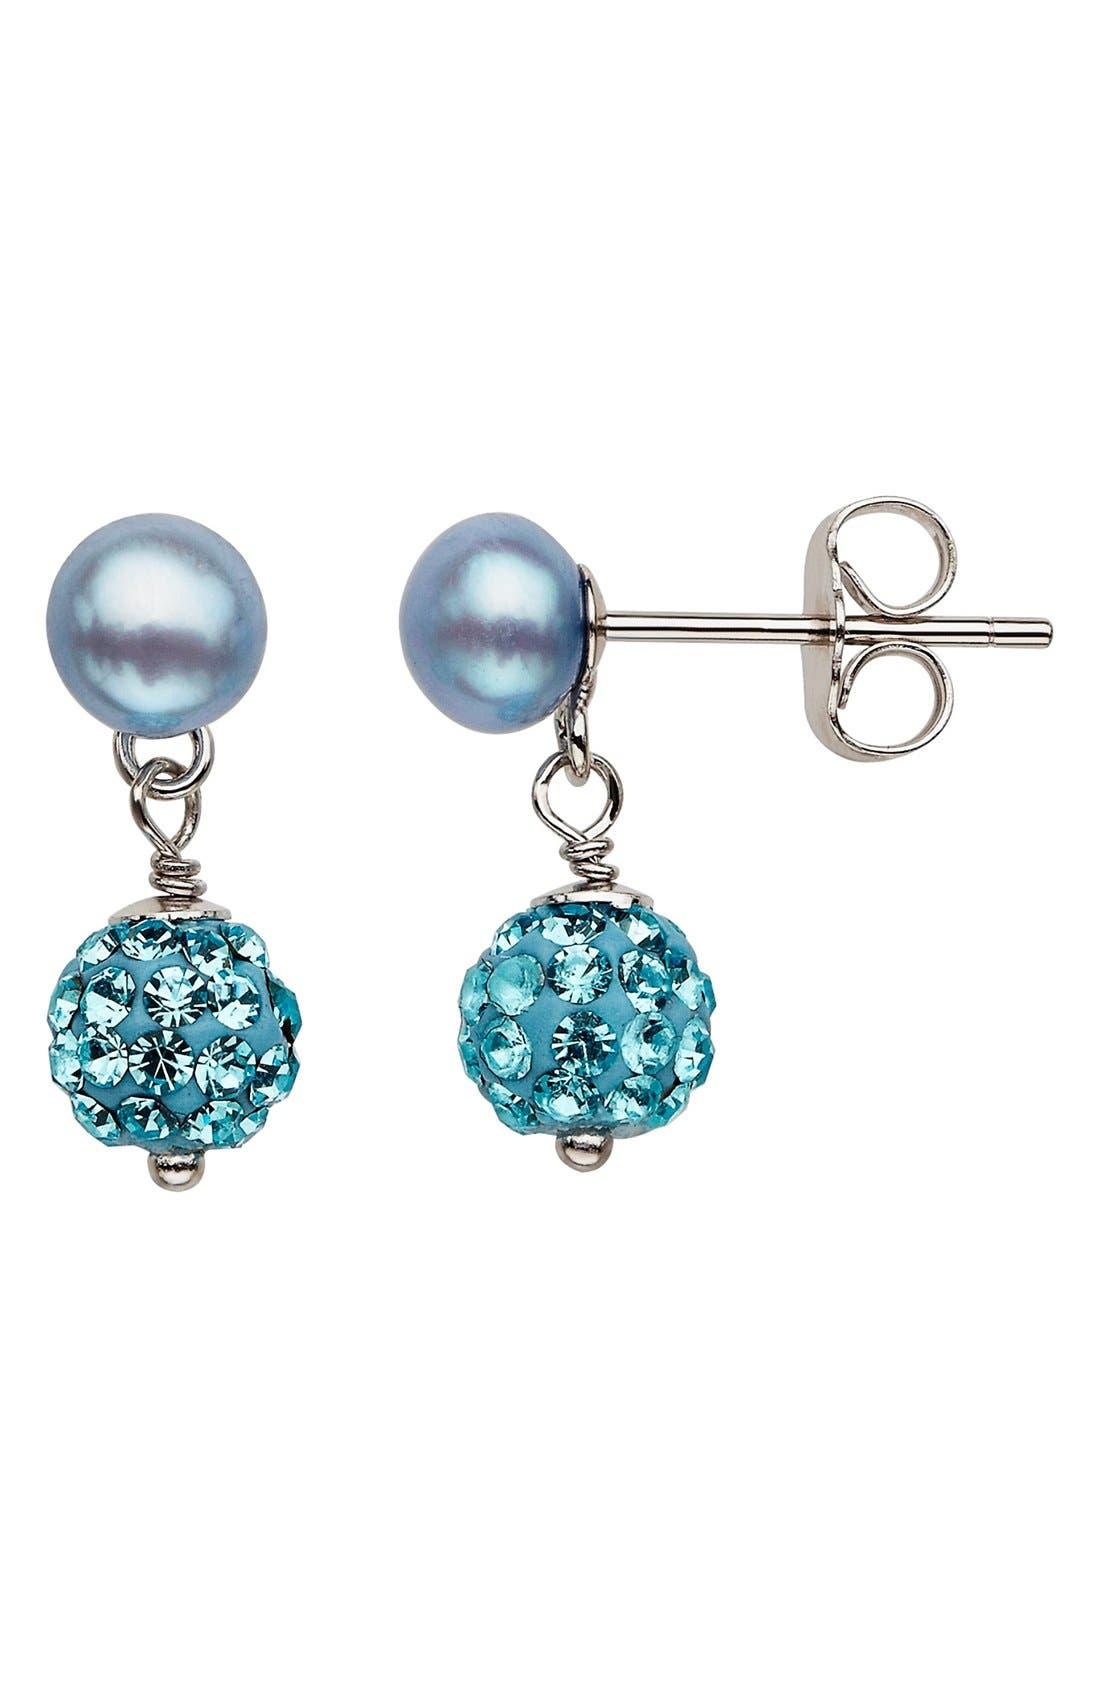 Crystal & Freshwater Pearl Earrings,                             Main thumbnail 1, color,                             400